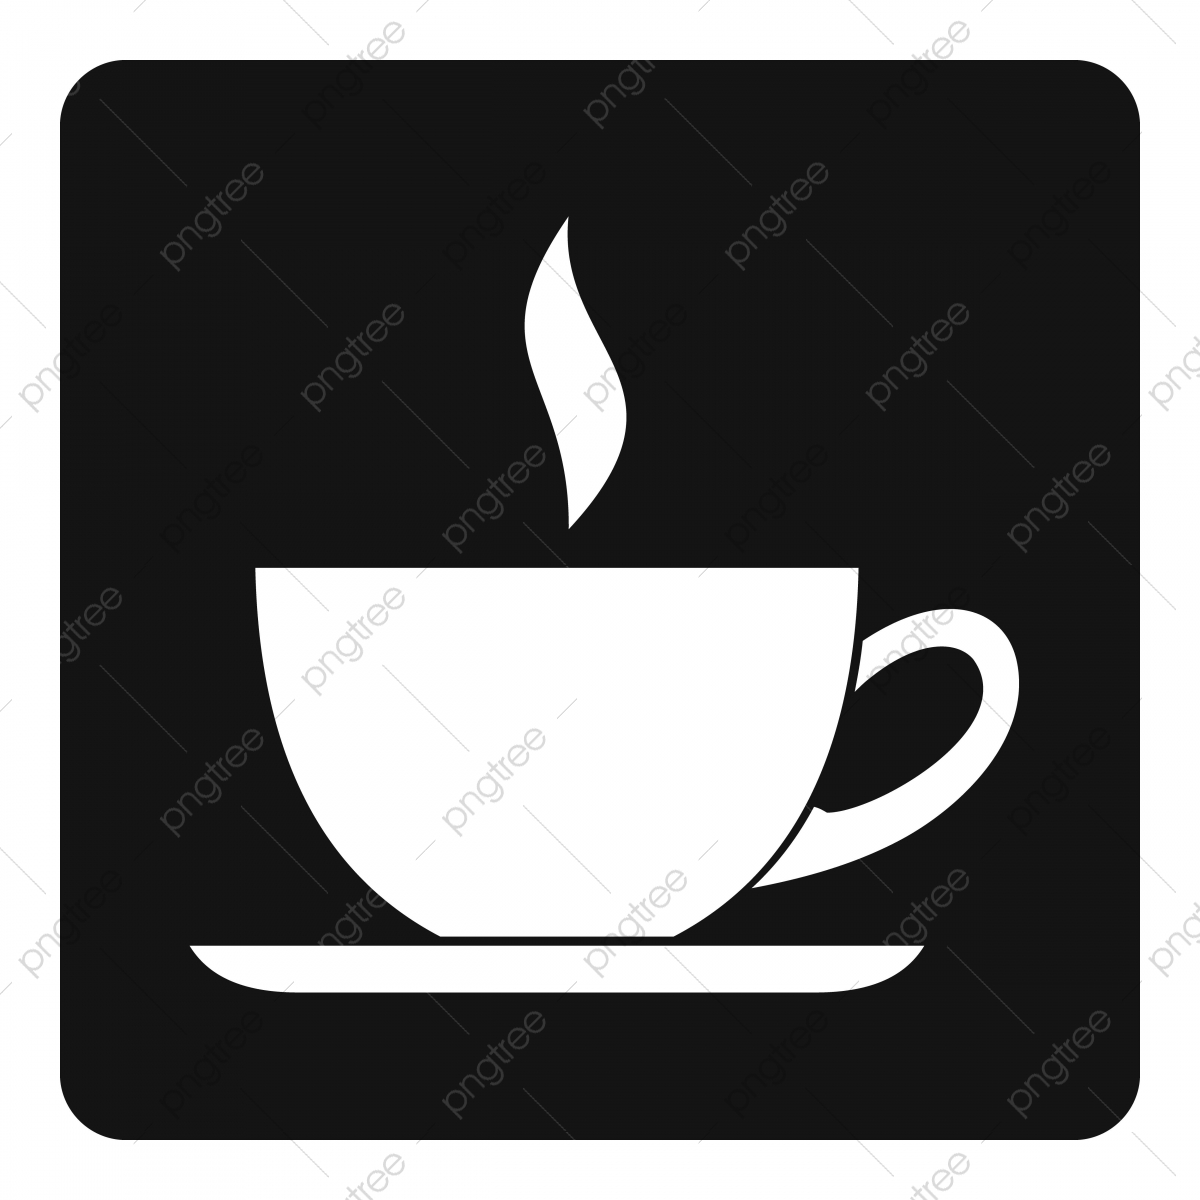 cup of tea or coffee icon simple simple black cup png and vector with transparent background for free download https pngtree com freepng cup of tea or coffee icon simple 5272251 html